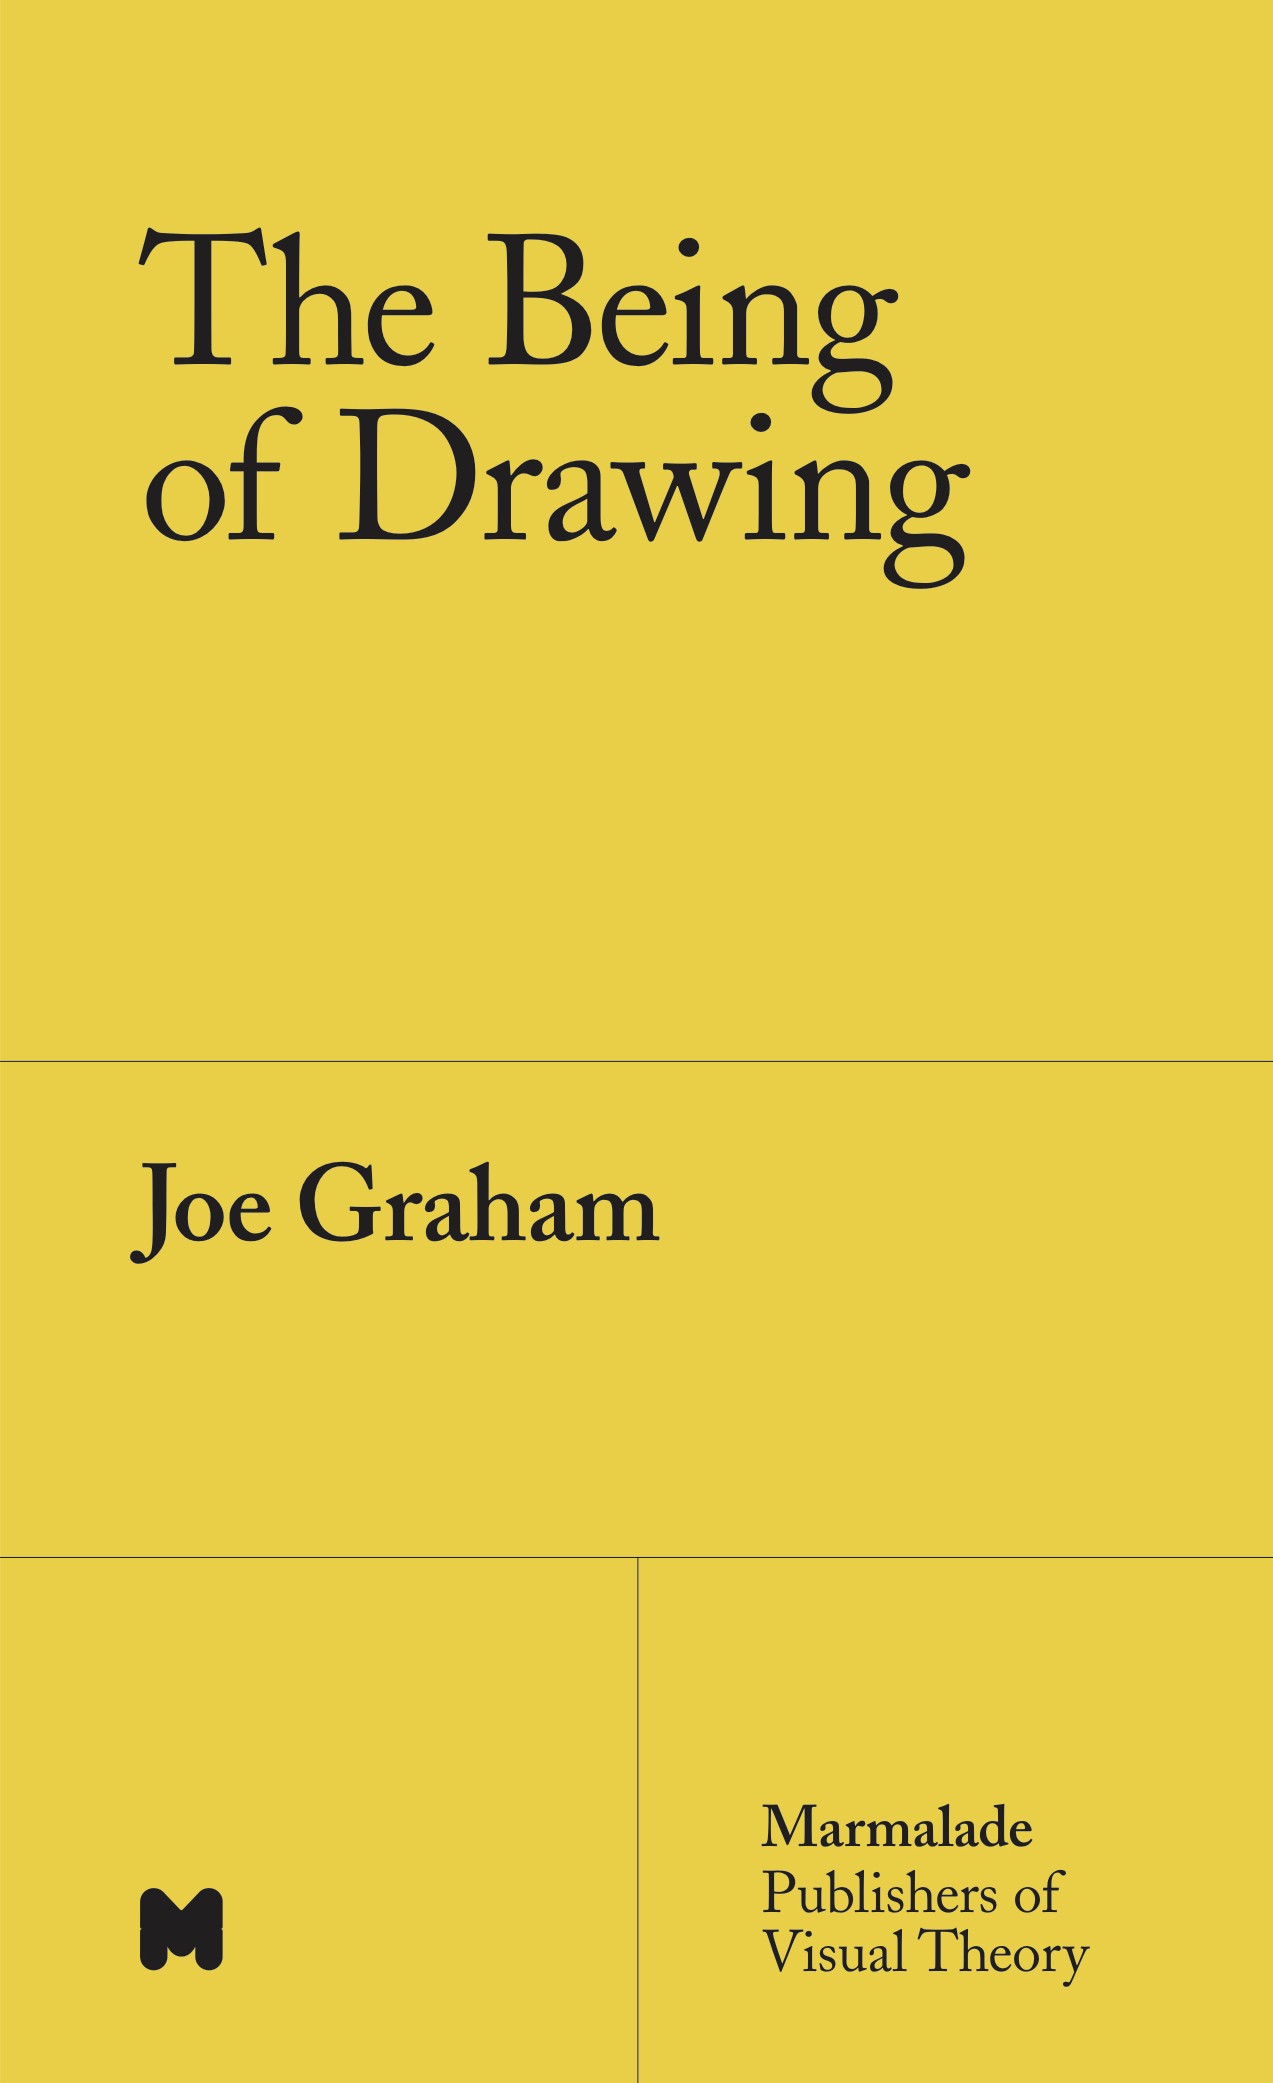 Being of Drawing, The